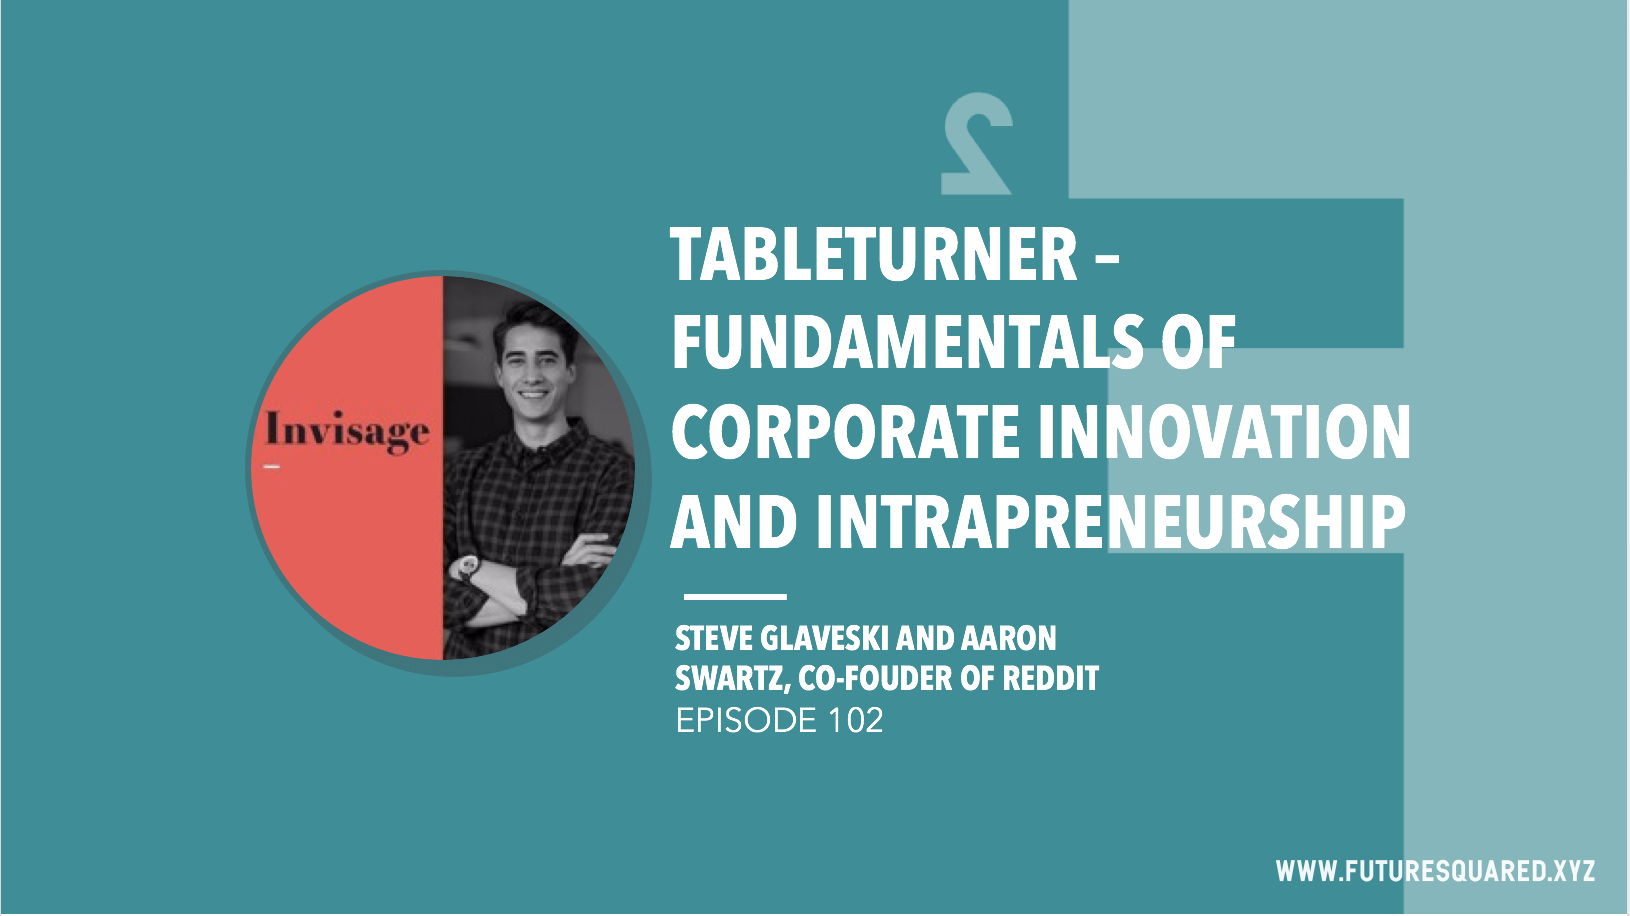 Future Squared Episode #102: Tableturner - Fundamentals of Corporate Innovation and Intrapreneurship